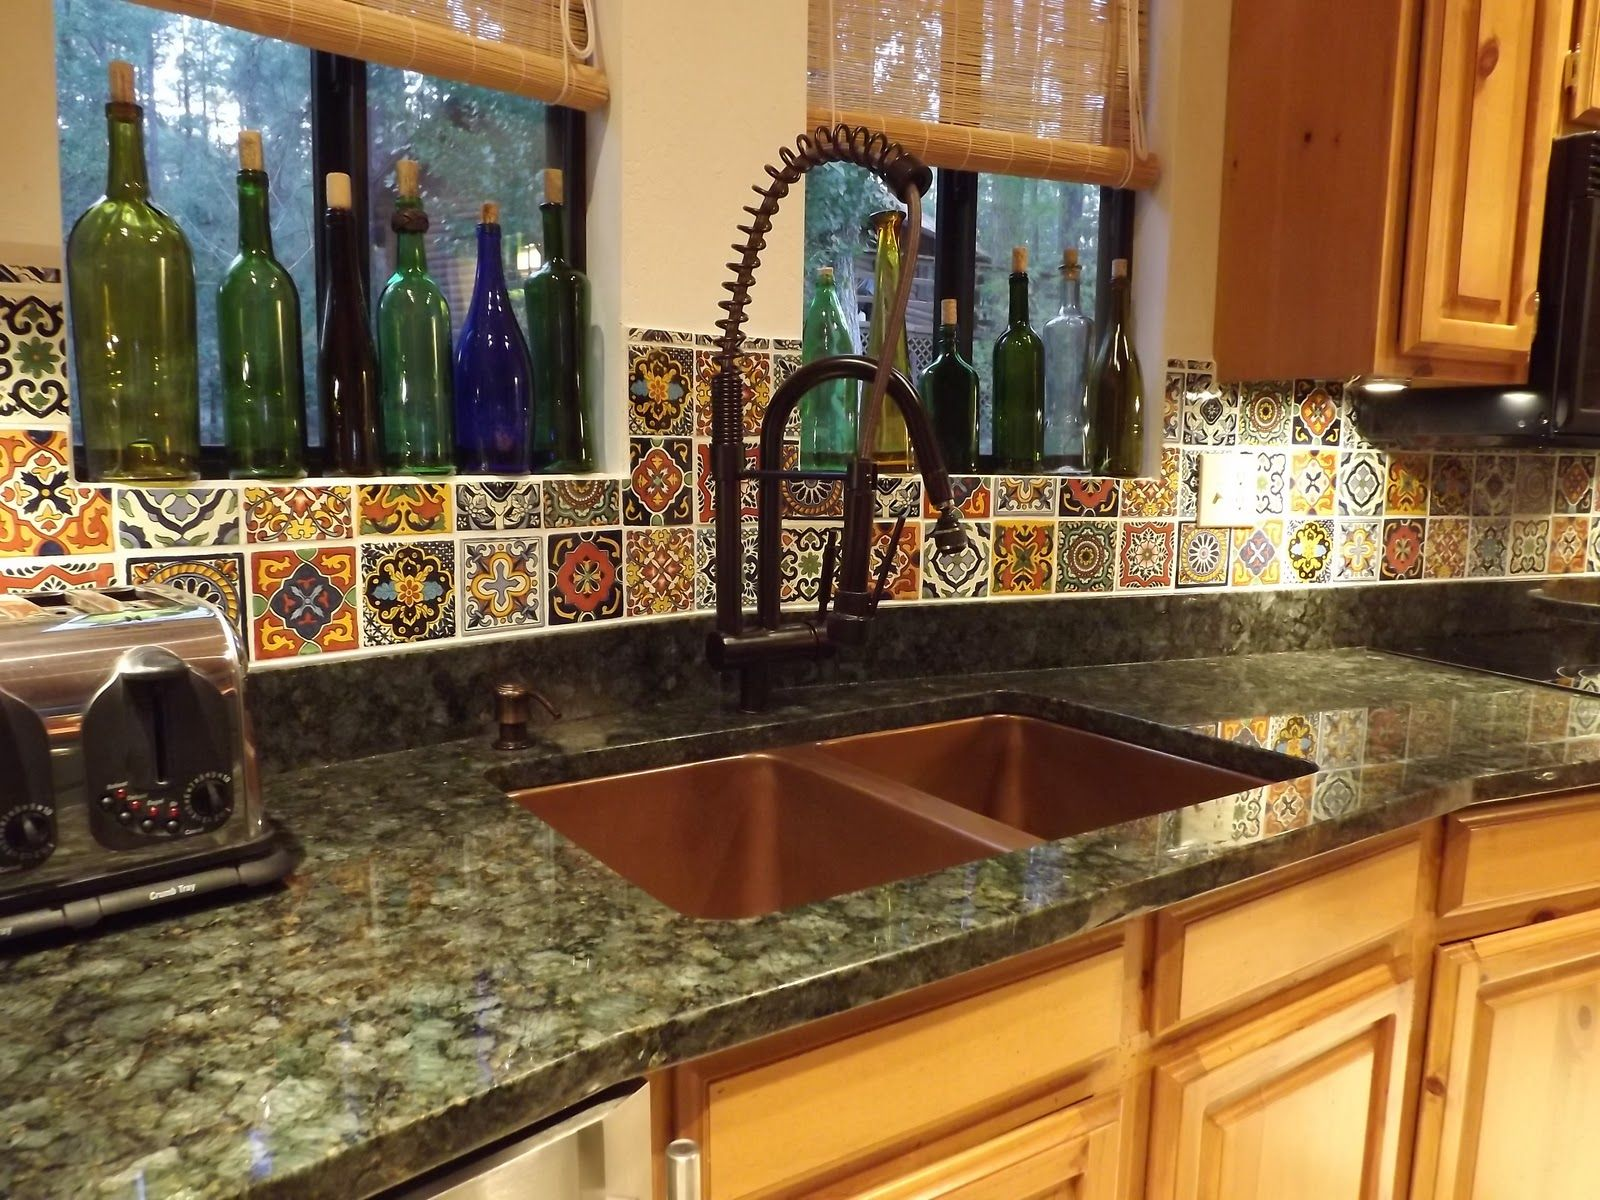 Hereu0027s A Variety Of Beautiful DIY Backsplash Ideas For Redesigning Your  Kitchen Wall. Diy Kitchen Backsplash Pictures For Your Inspiration: Mexican  Diy Tile ...